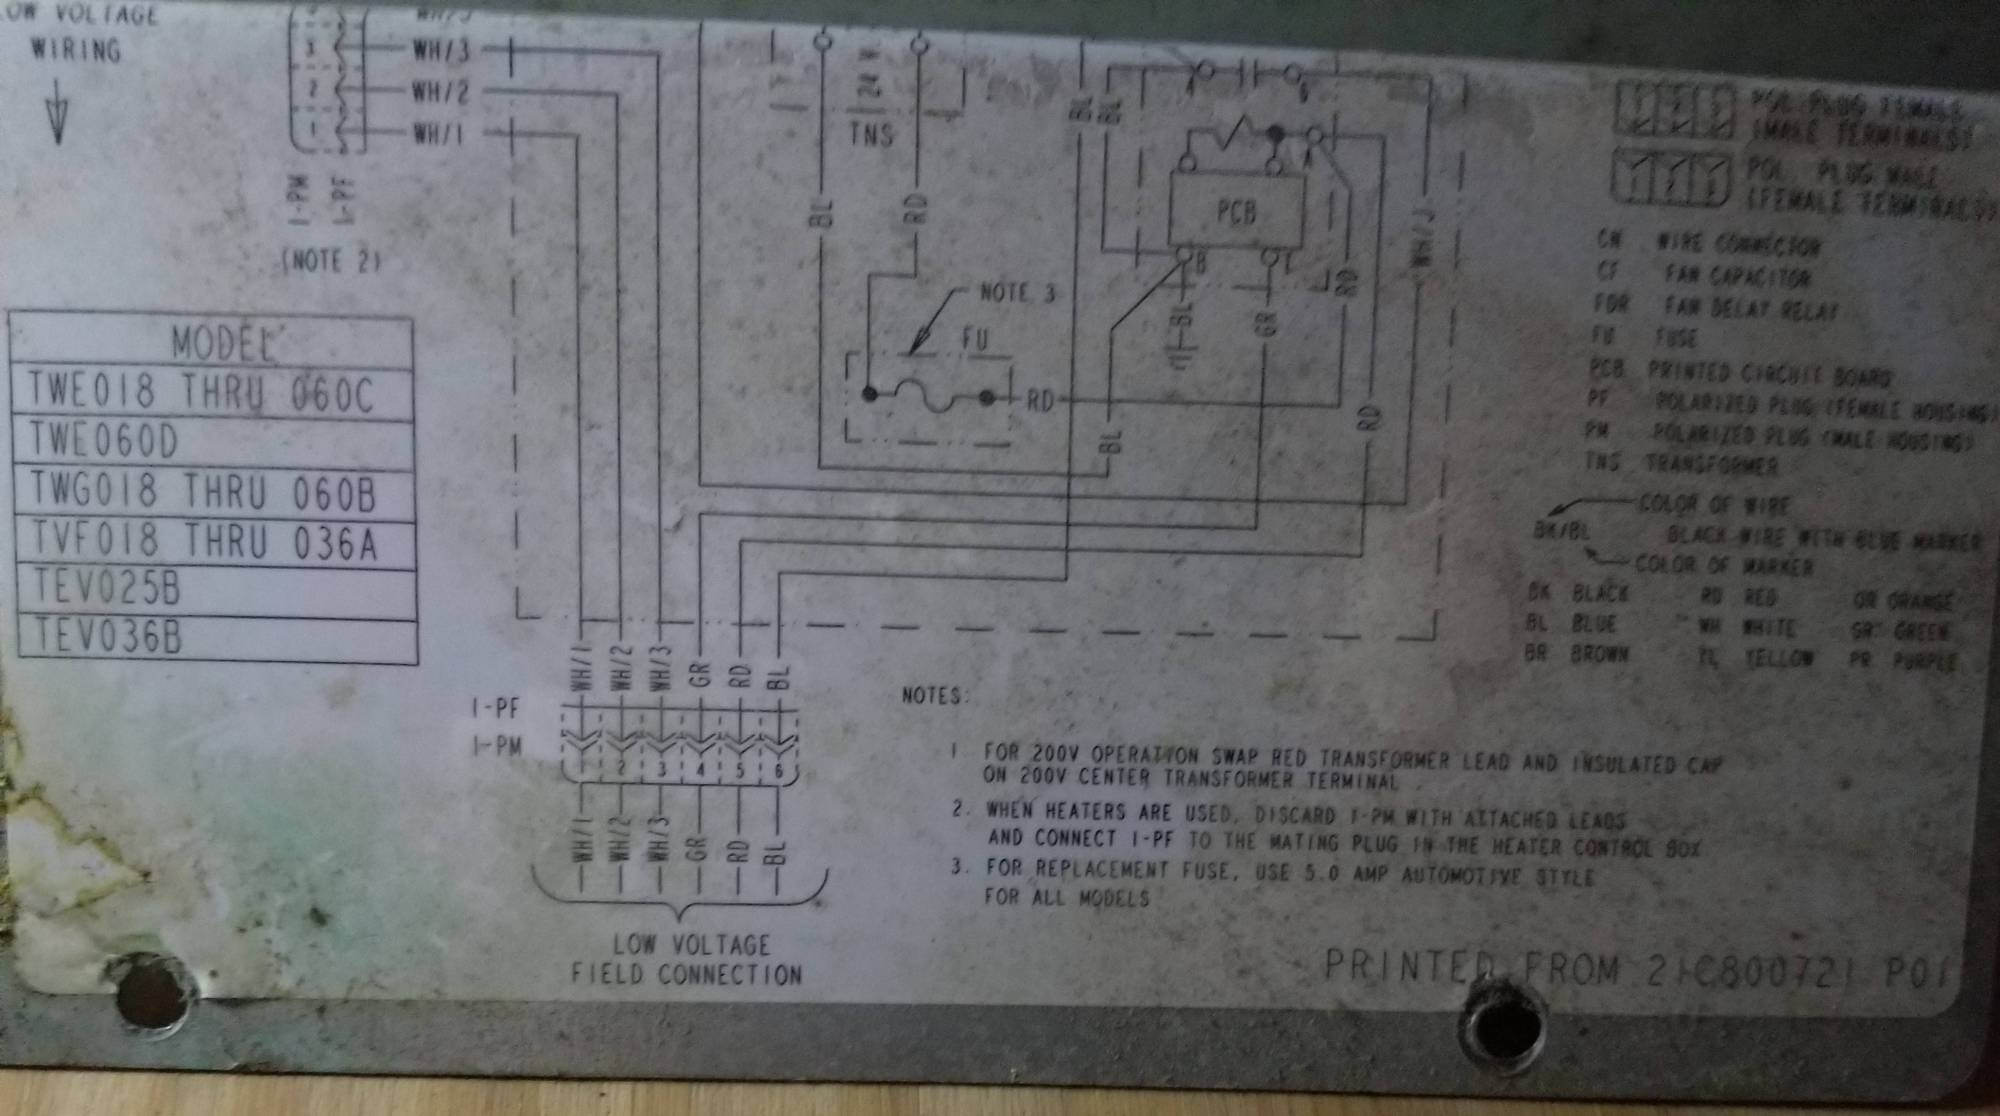 hight resolution of  wiring diagram image 1 of 2